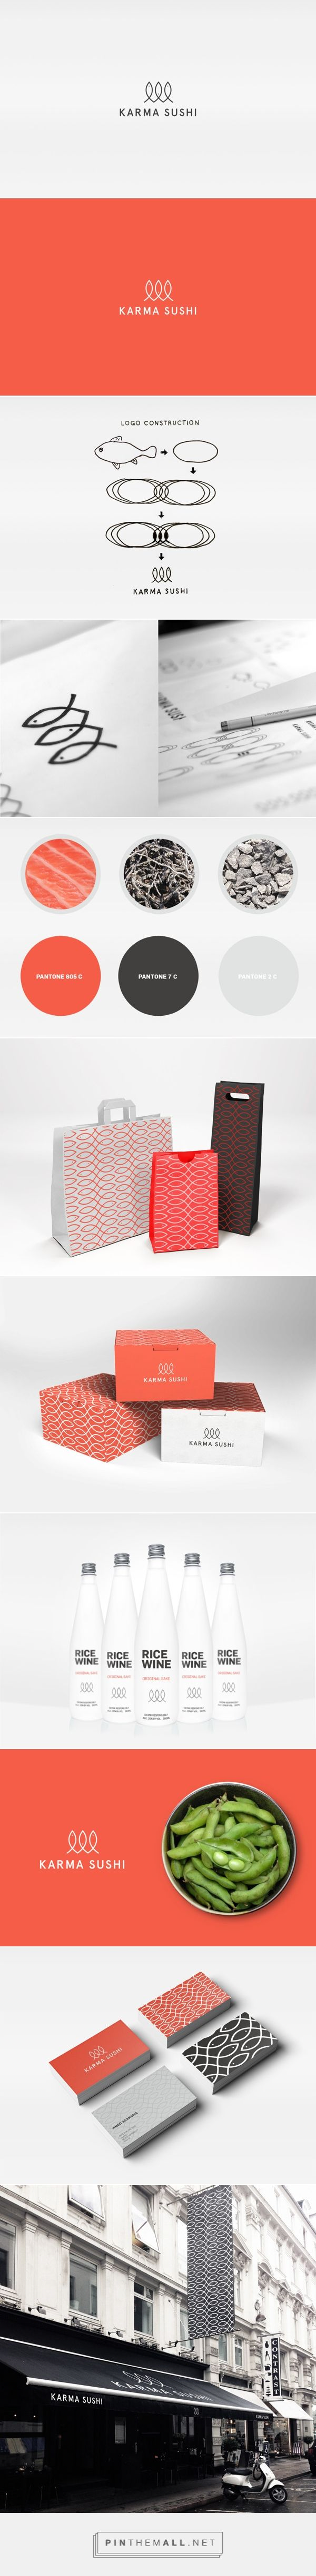 Karma Sushi on Behance - created via http://pinthemall.net